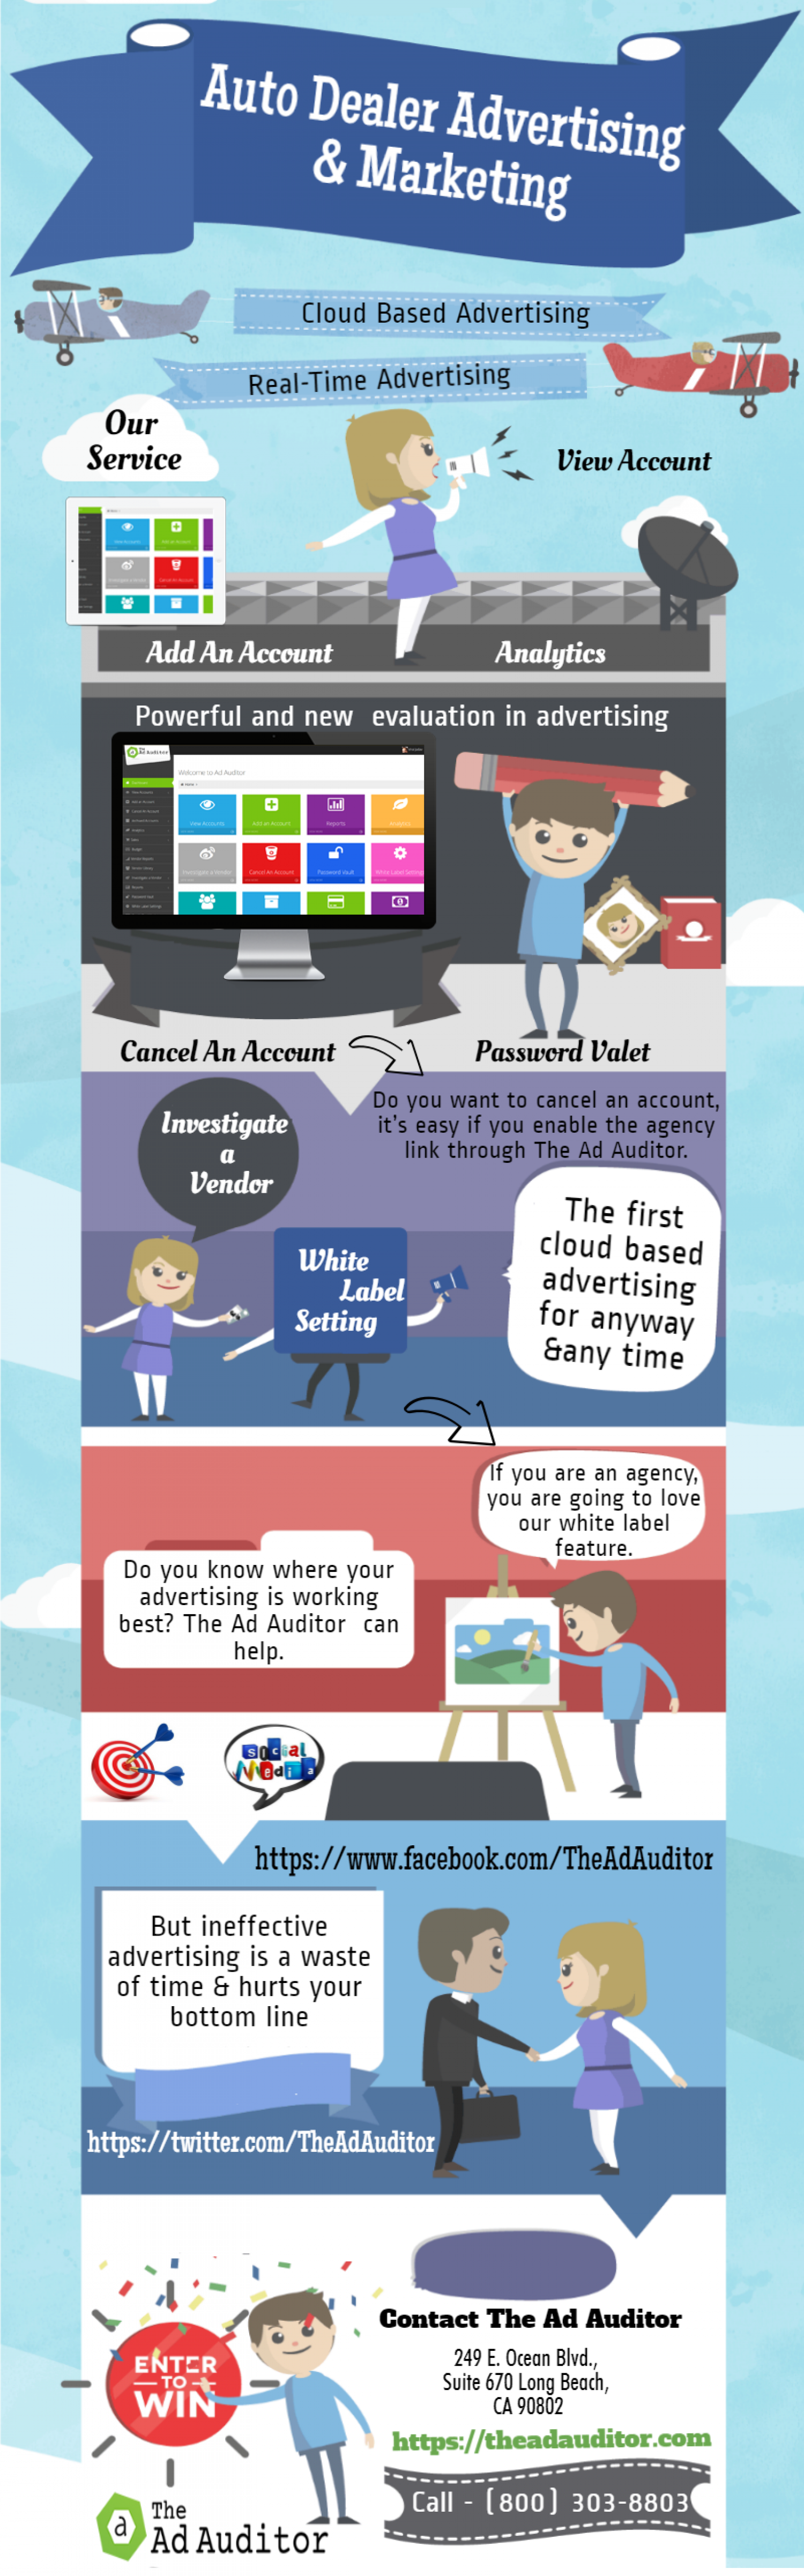 Auto Dealer Advertising and Marketing Infographic